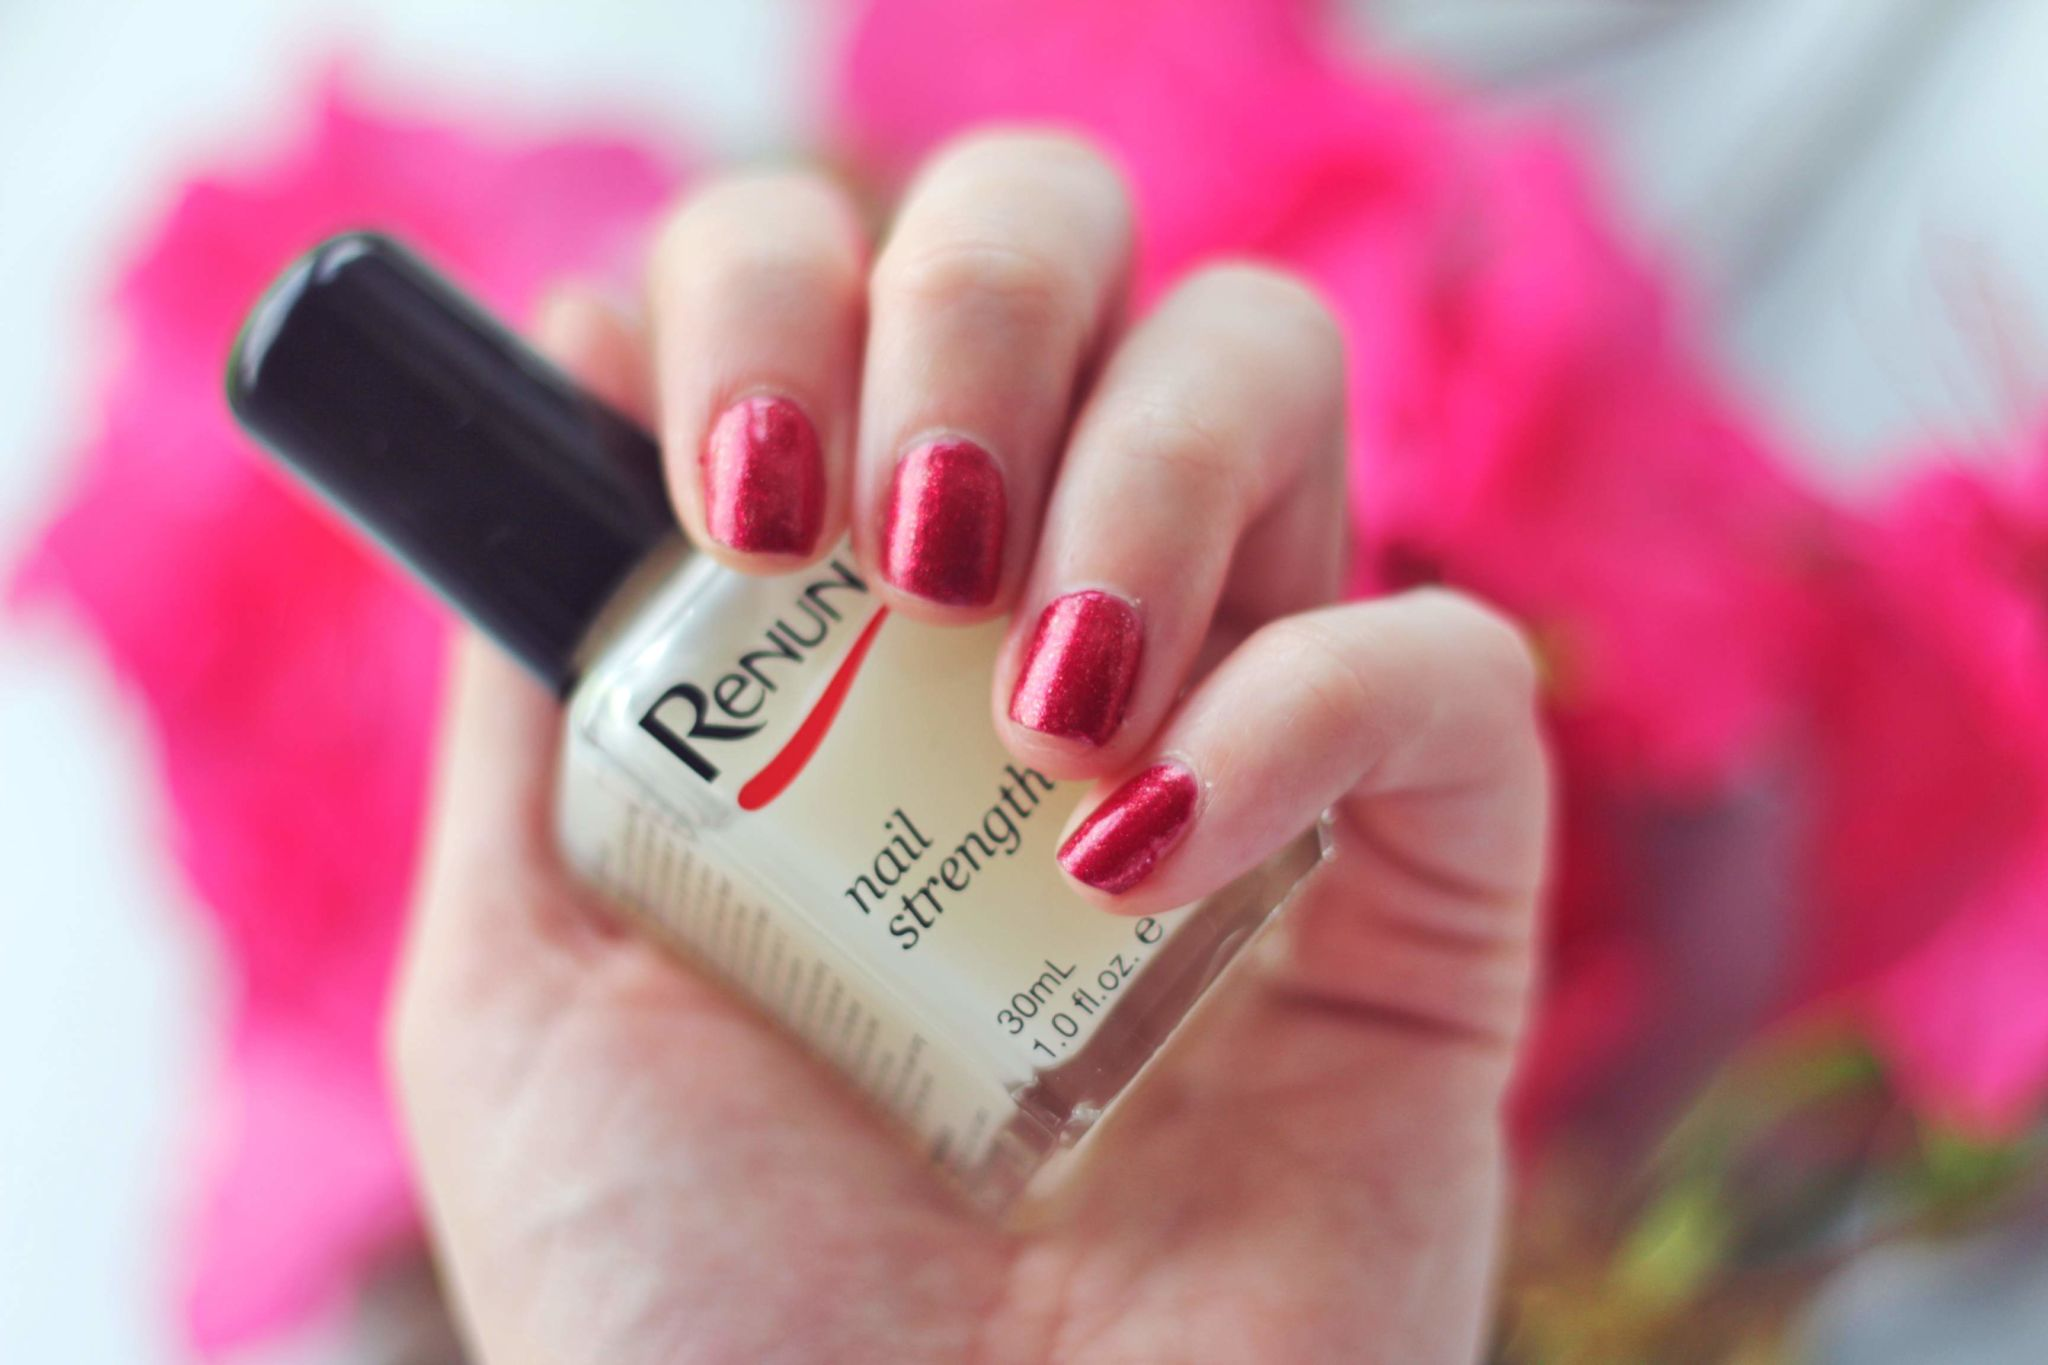 Renunail Nail Strengthener | How To Grow Your Nails Faster | Beauty Blog